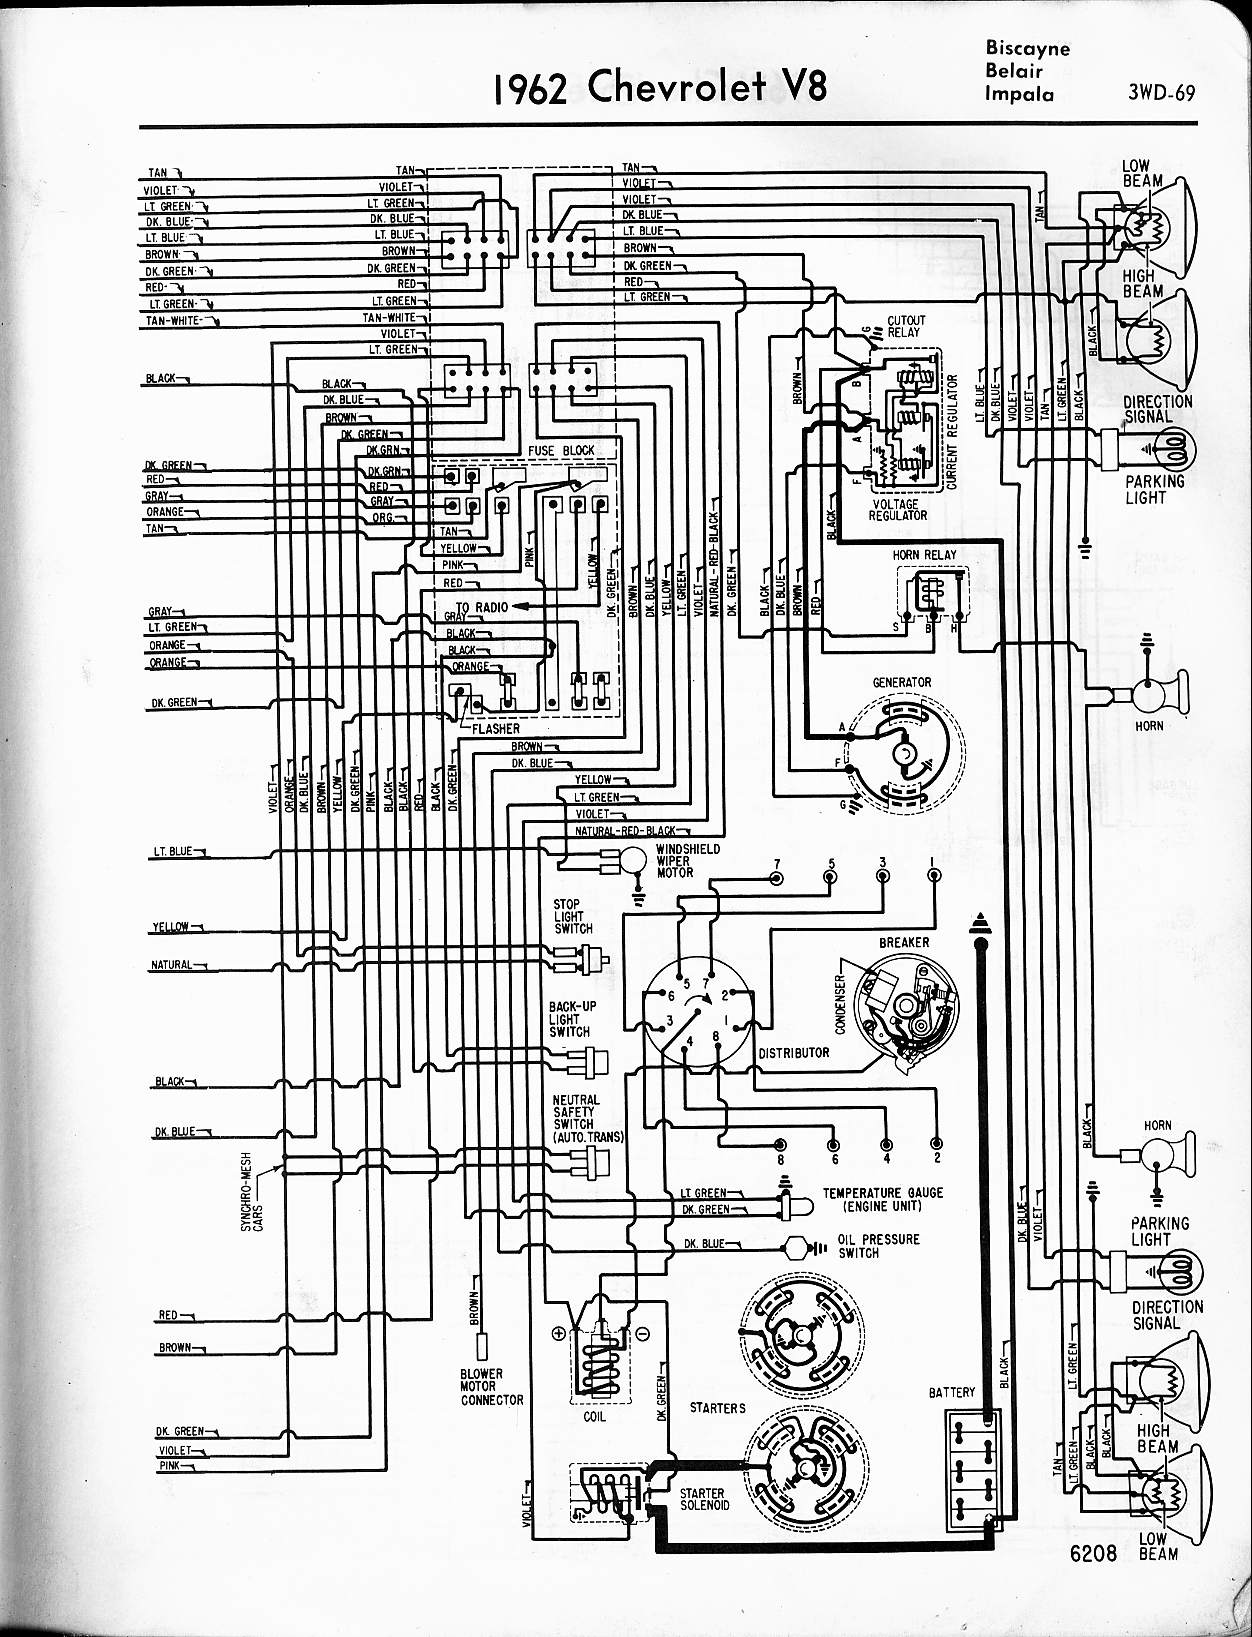 57 65 Chevy Wiring Diagrams 1977 Chevy Impala Wiring Schematic 1962 Impala  Wiring Diagram